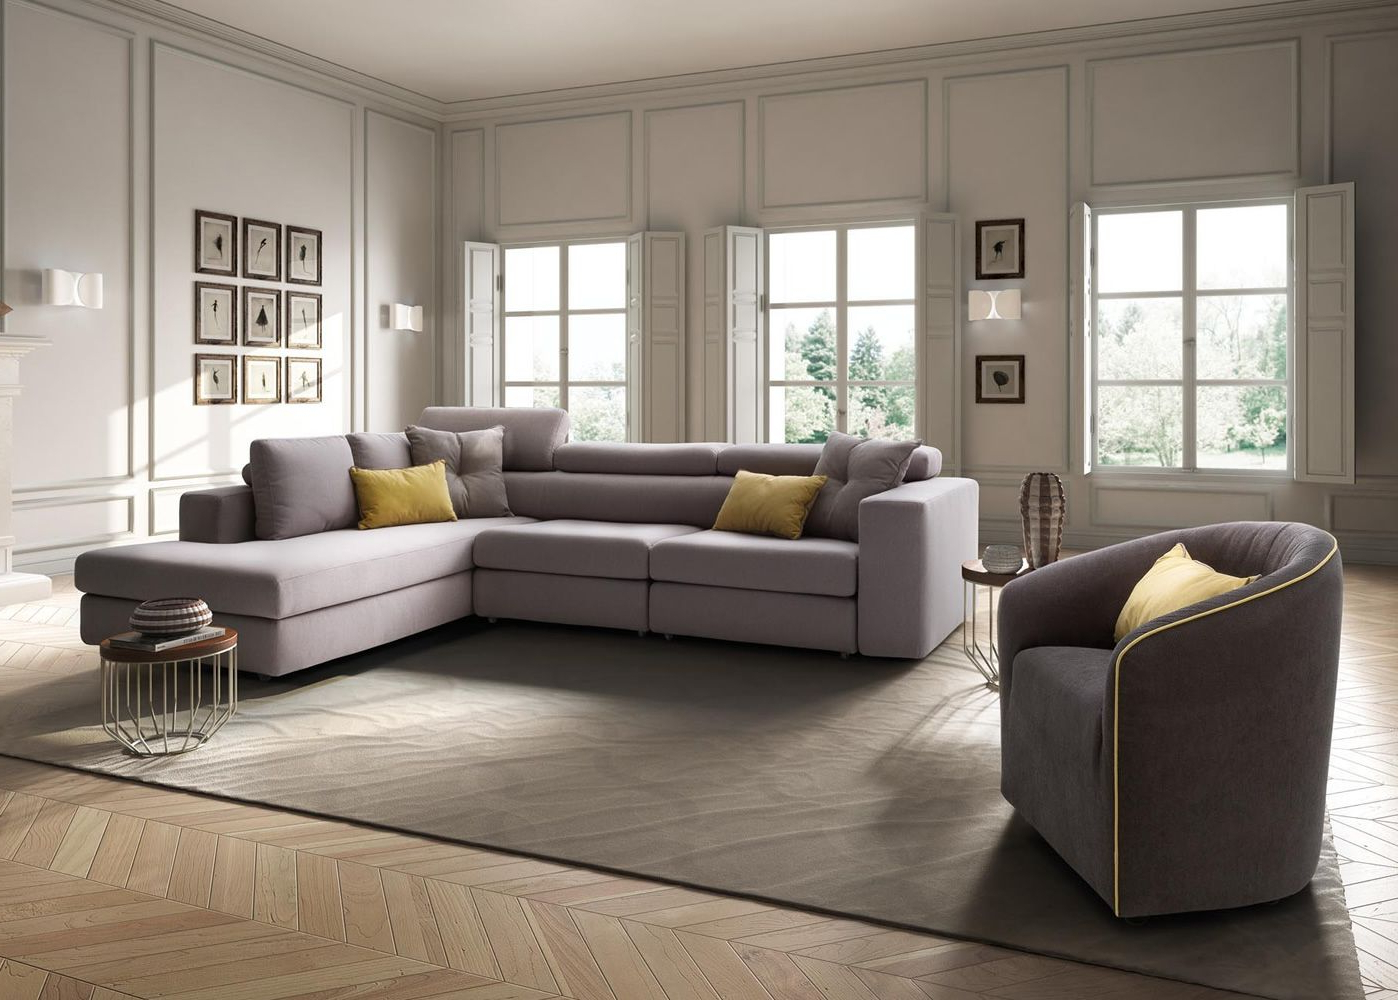 Best And Newest Paloma Sofas With Cushions With Regard To Paloma Maxi (View 9 of 25)